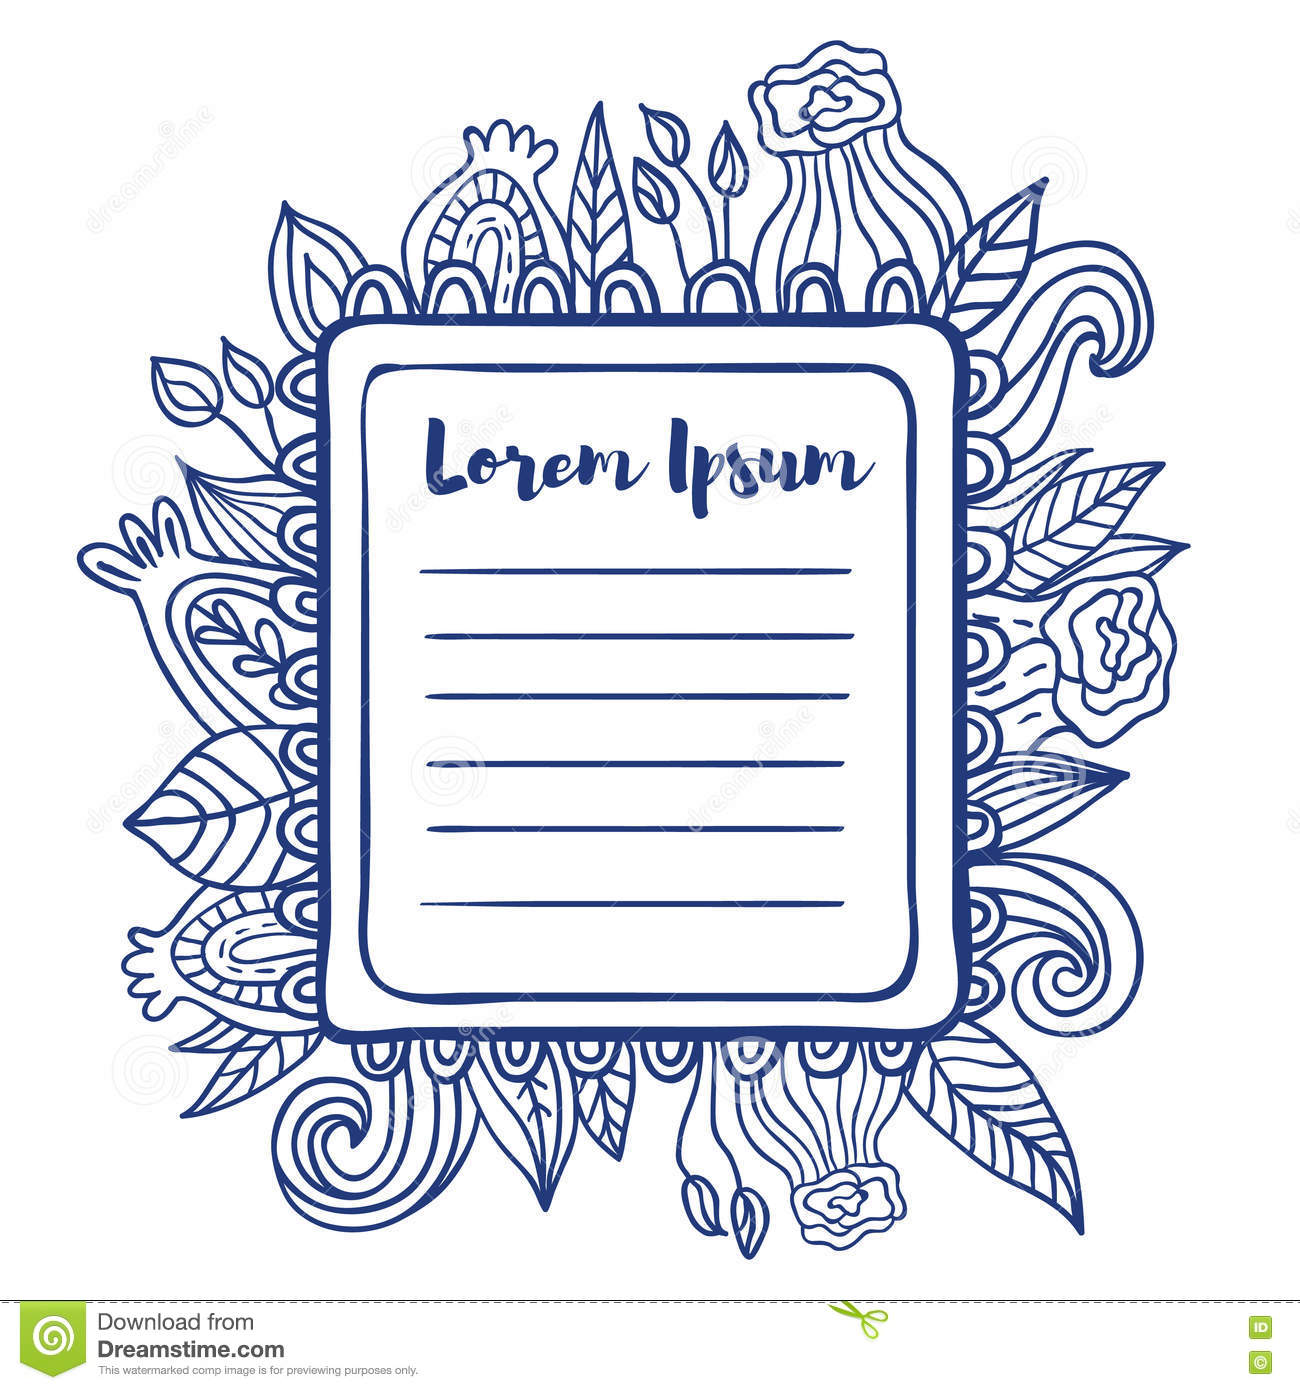 printable to do list page. stock illustration. illustration of note